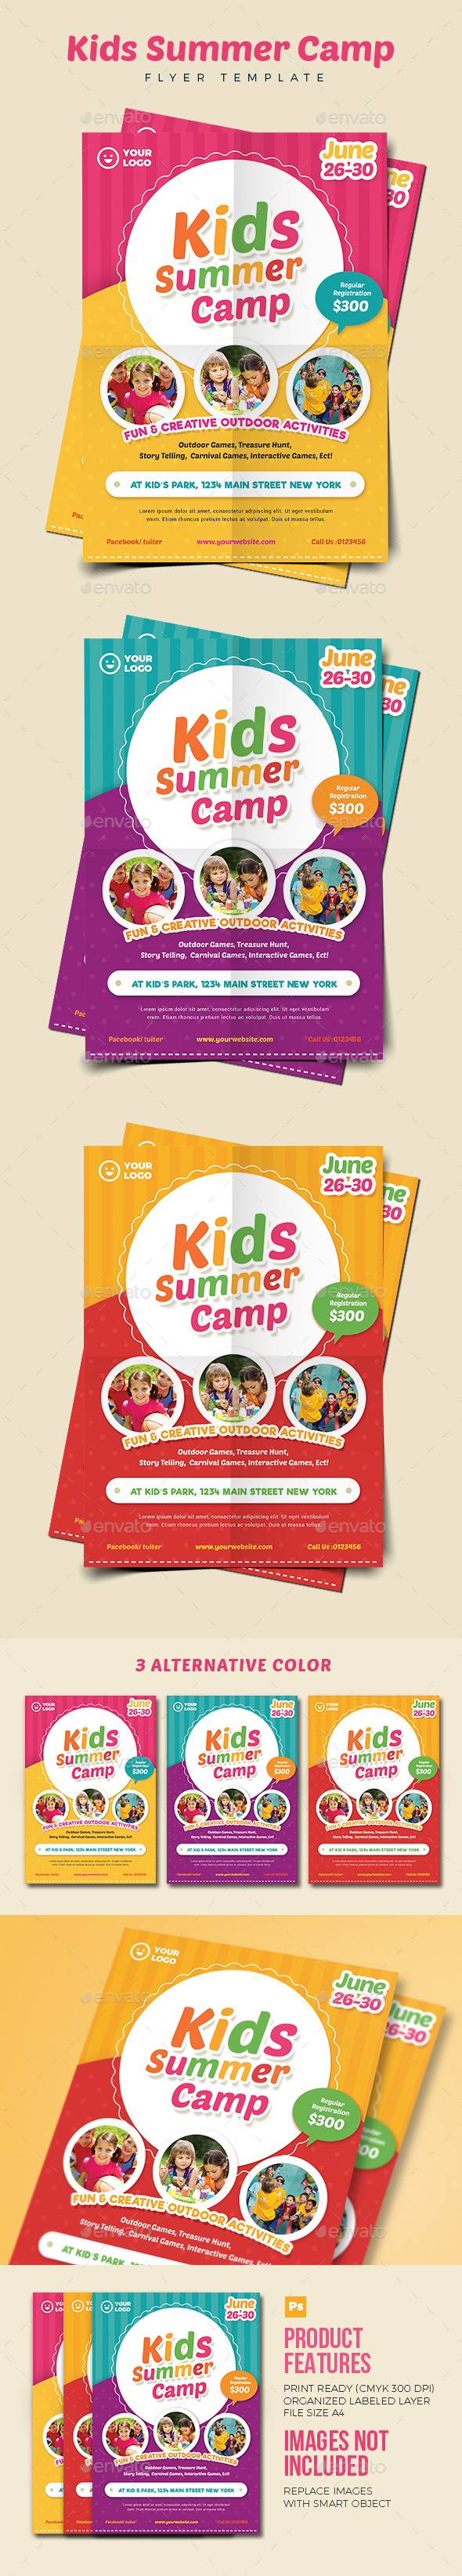 Kids Summer Camp Flyer 02 - Holidays Events